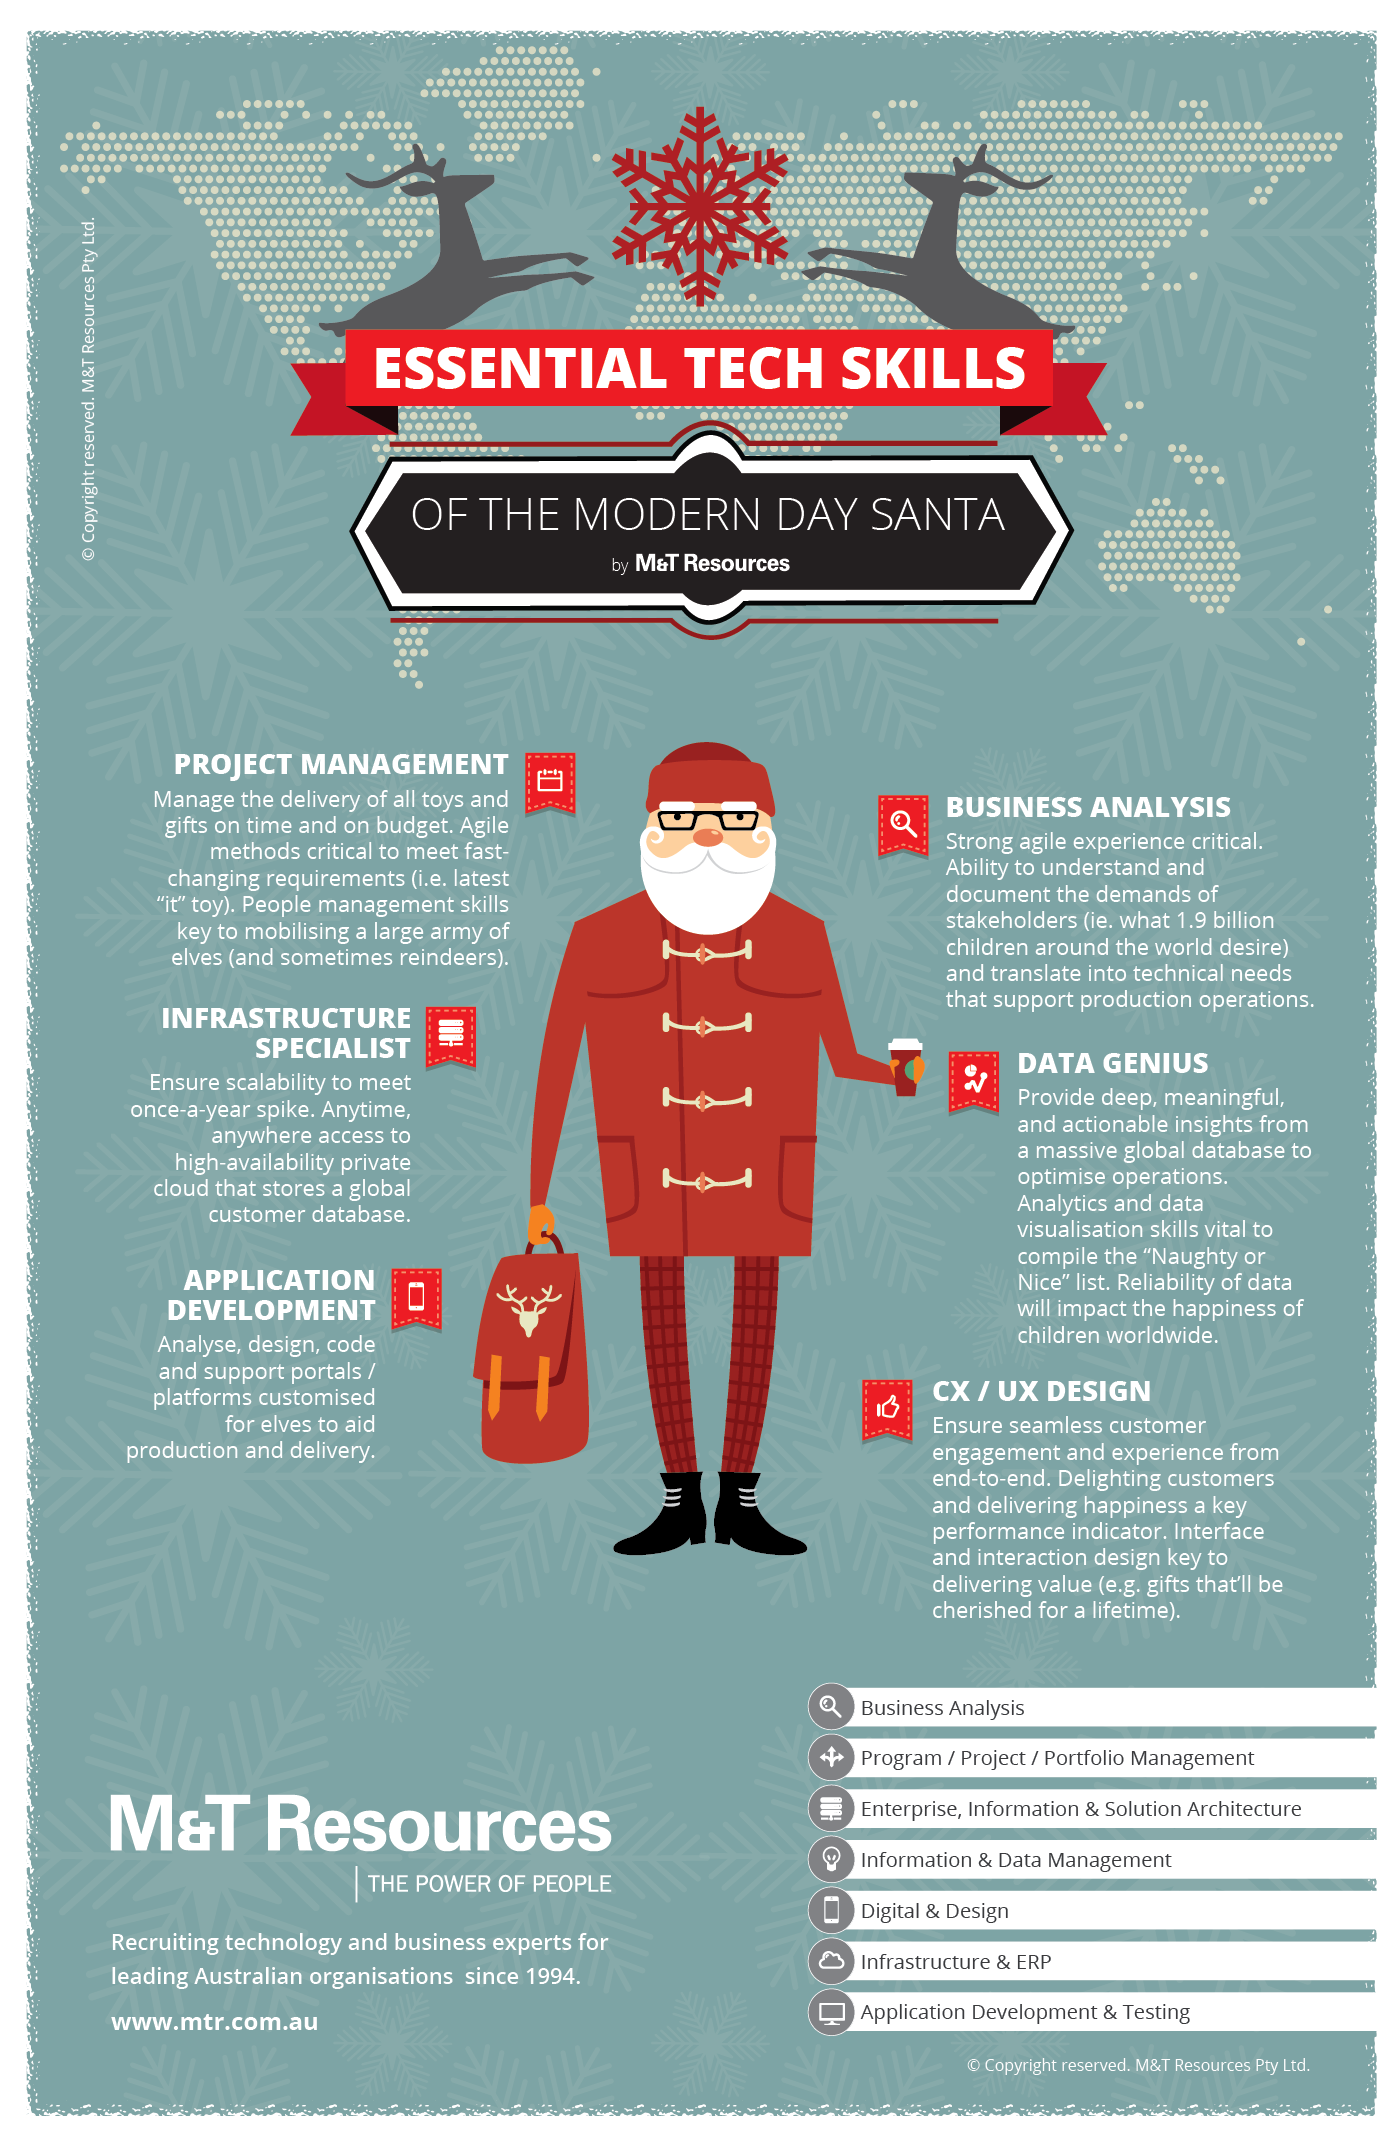 MT Resources Essential Tech Skills of the Modern Day Santa